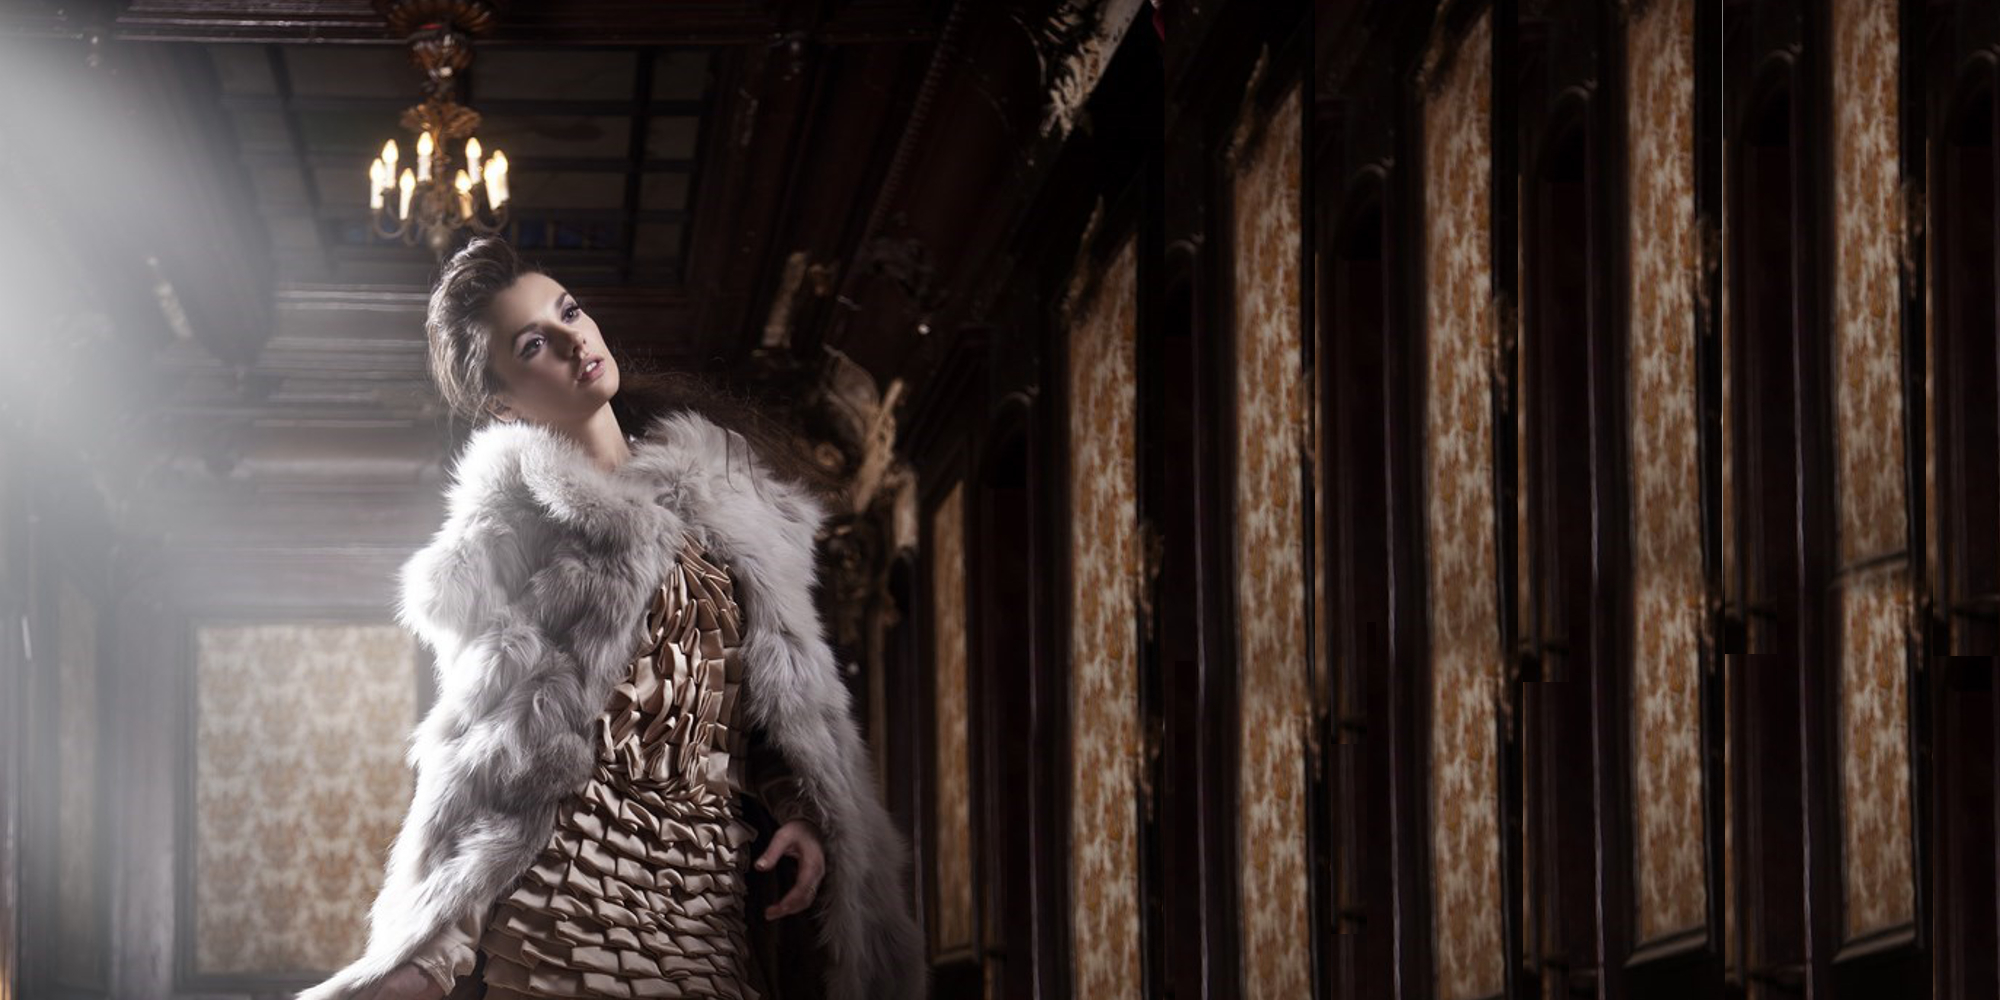 Woman with fur coat, high fashion dress, representing the Haute Couture collection of rings